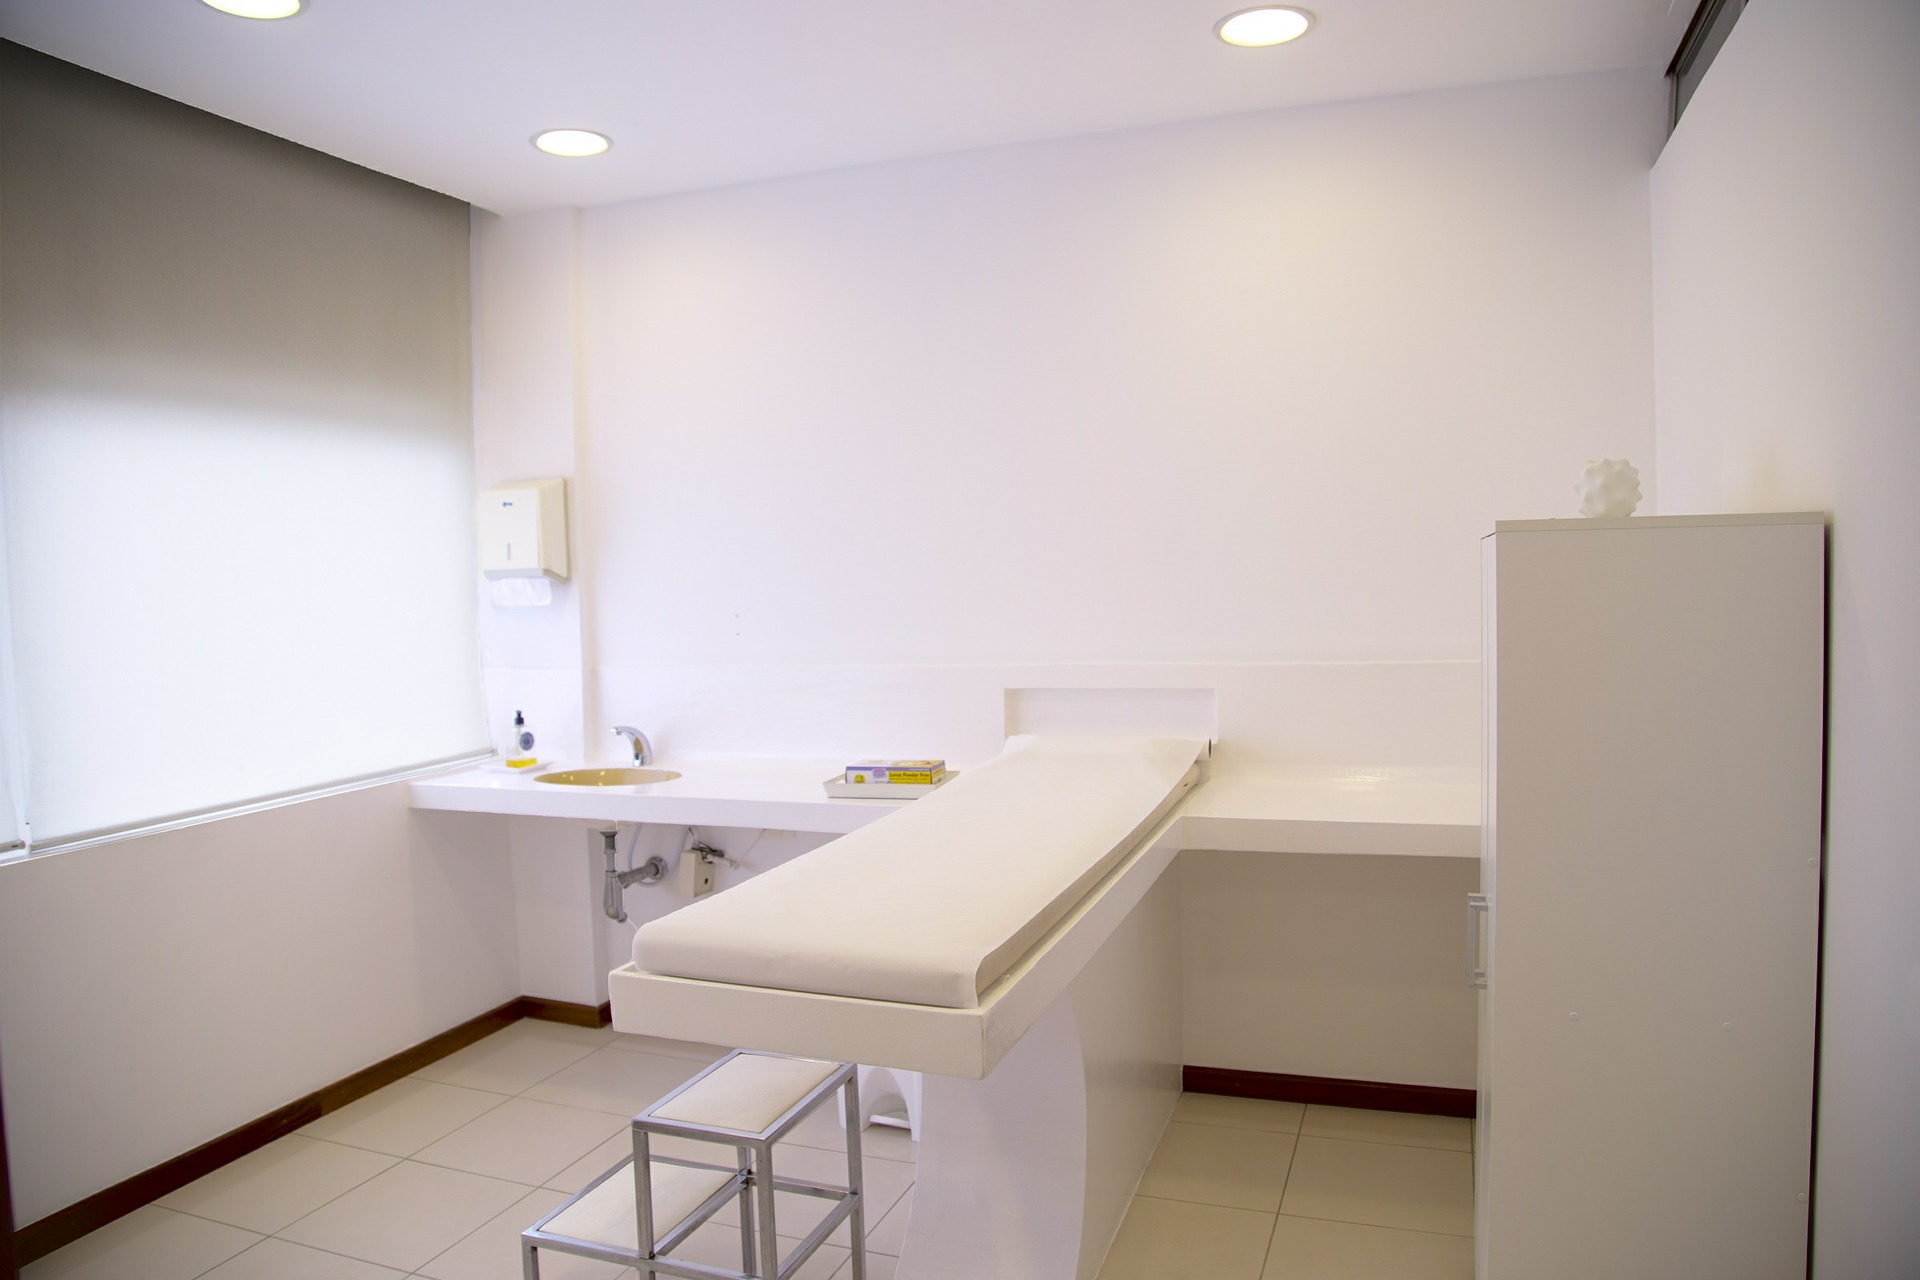 Minimalist medical treatment room with all white walls